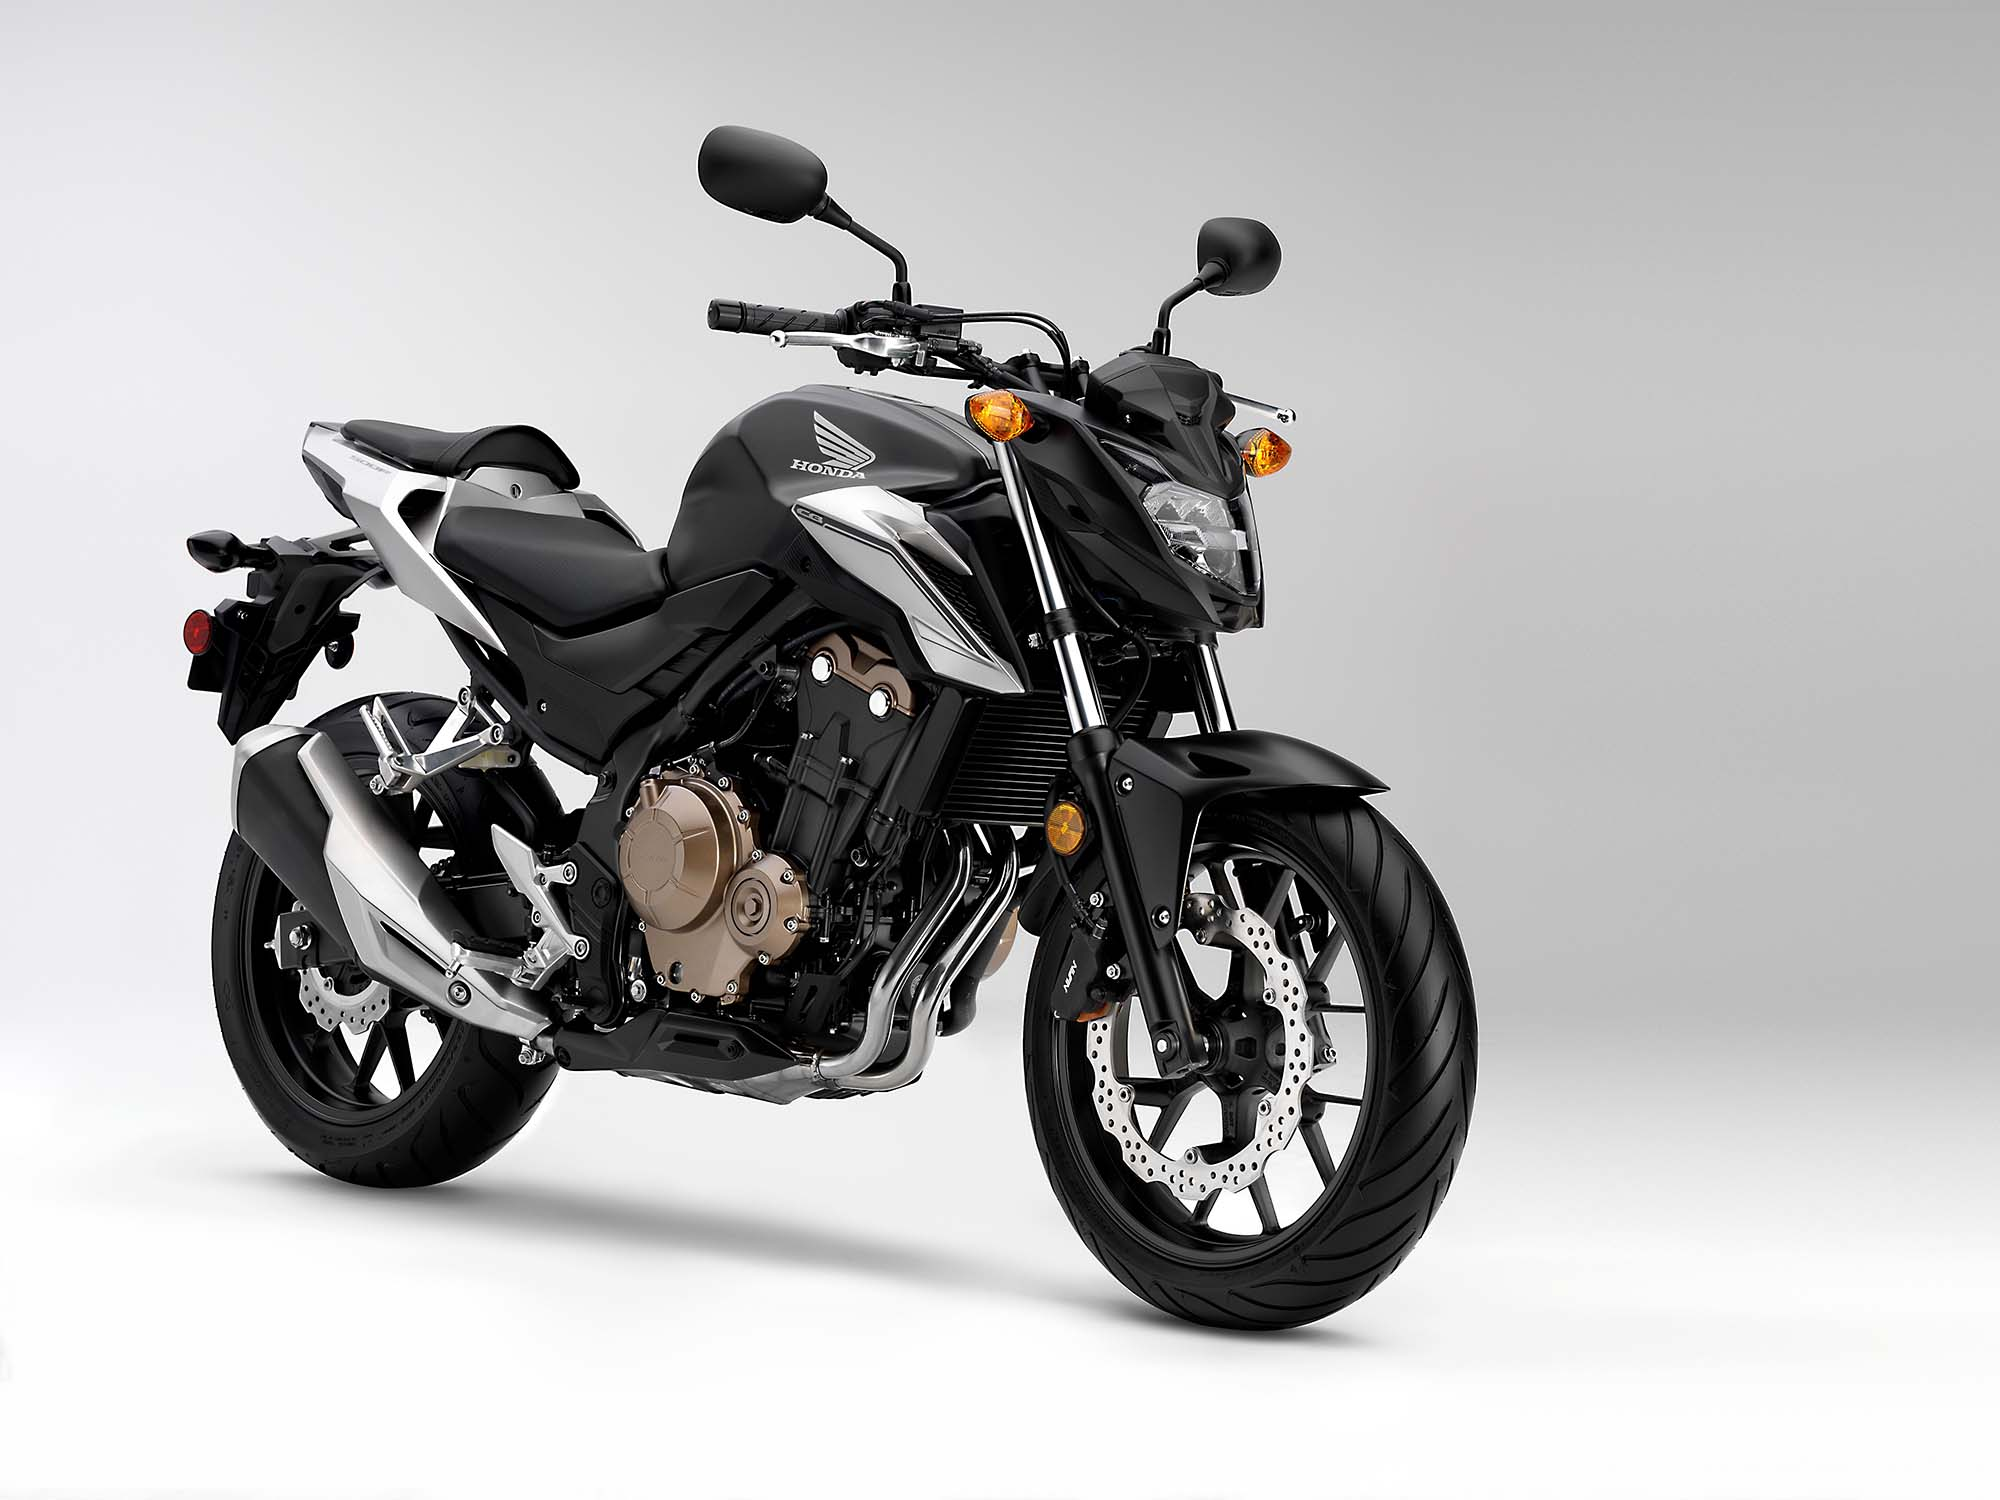 2016 Honda Cb500f Gets Much Need Facelift